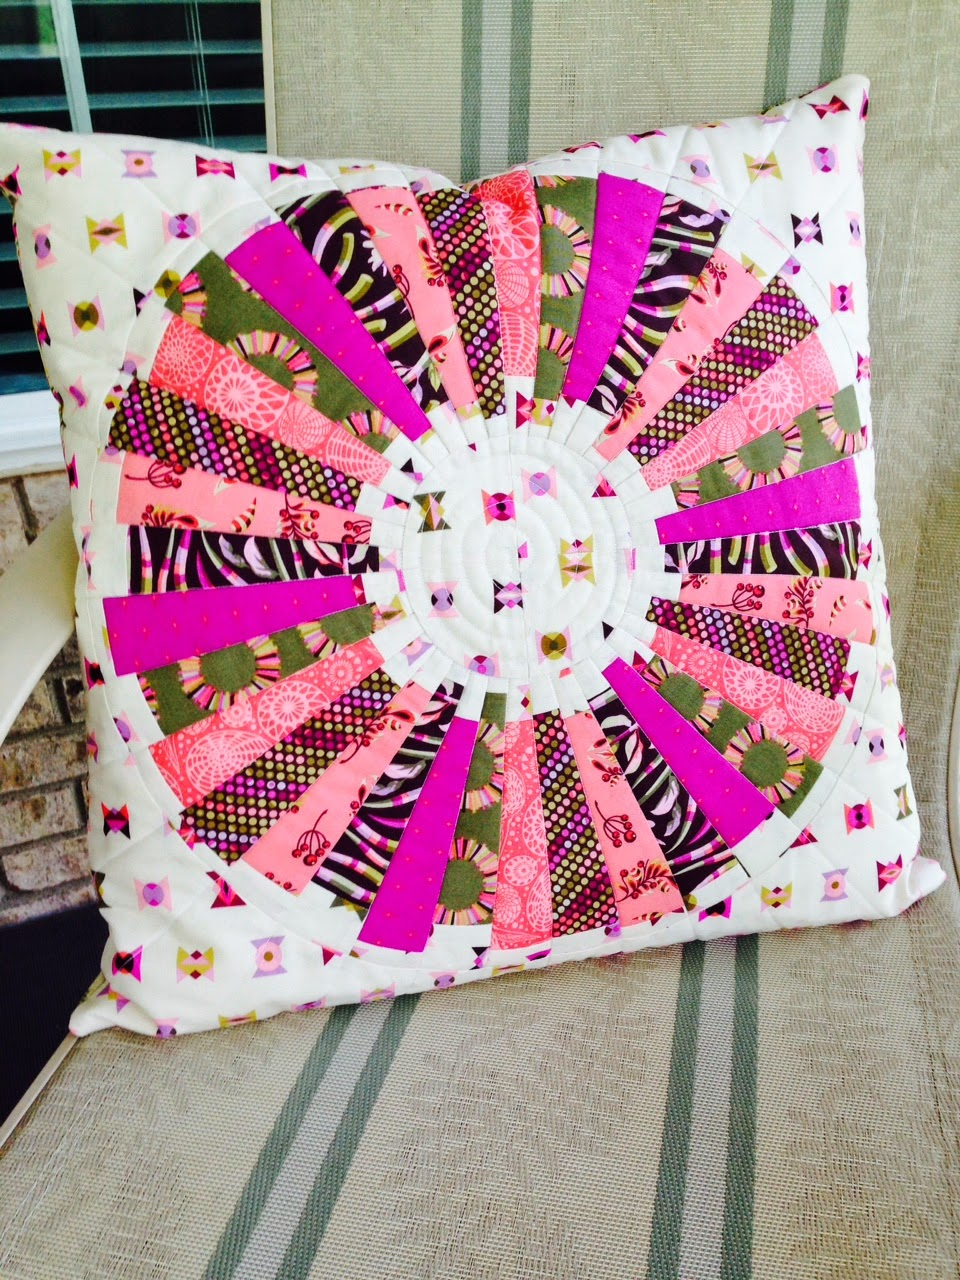 Karen S Sewing Room Tula Pink Pillows